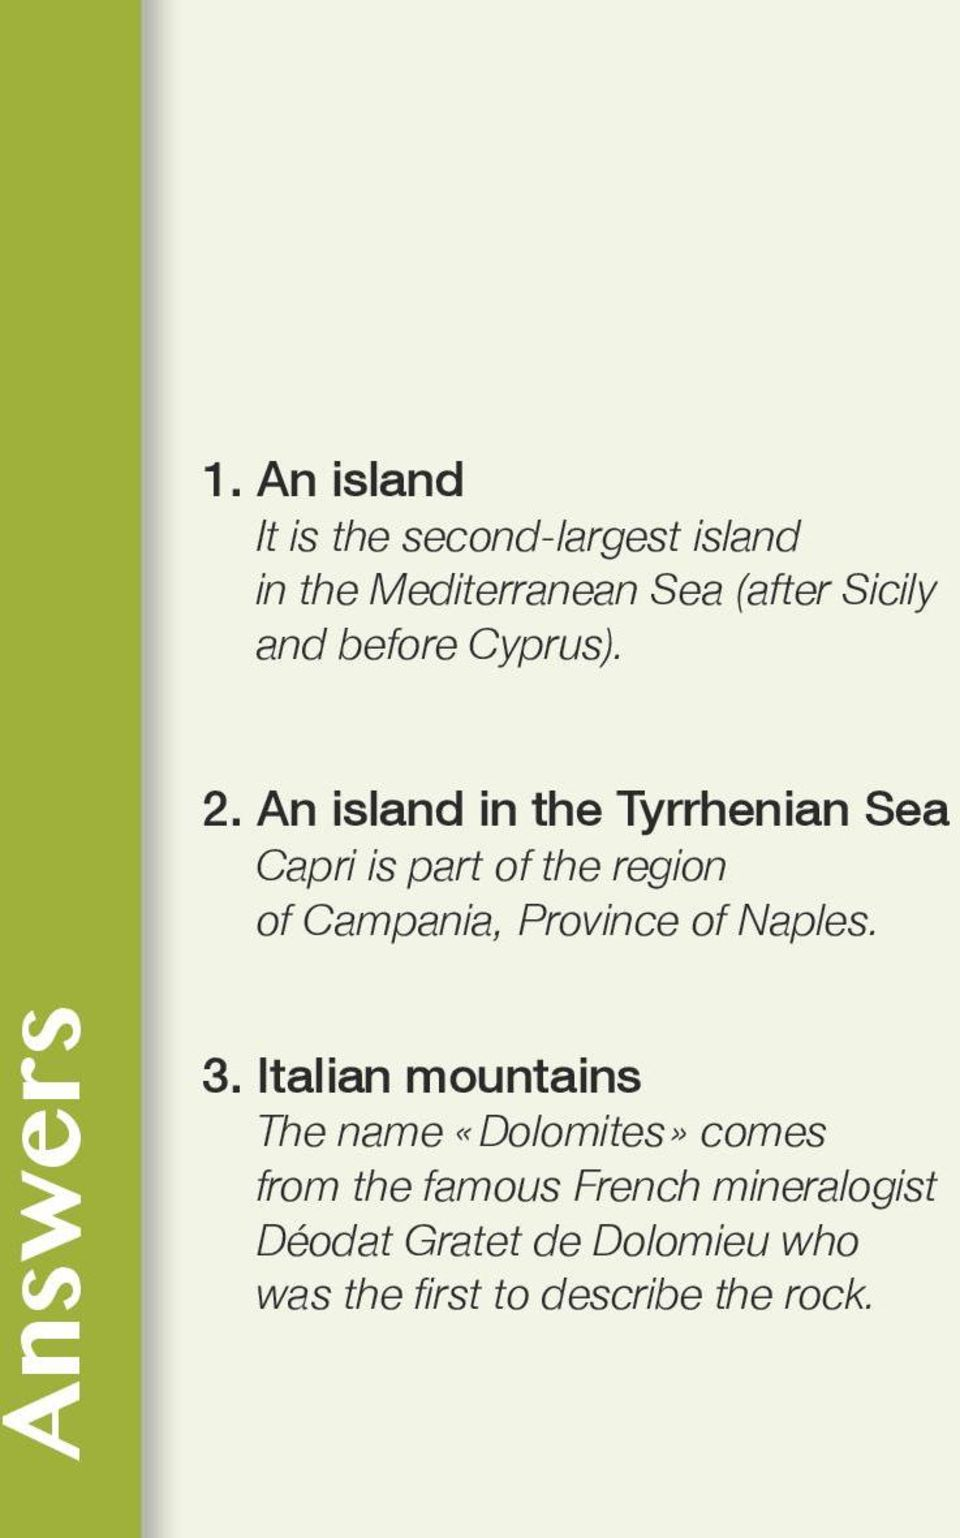 An island in the Tyrrhenian Sea Capri is part of the region of Campania, Province of